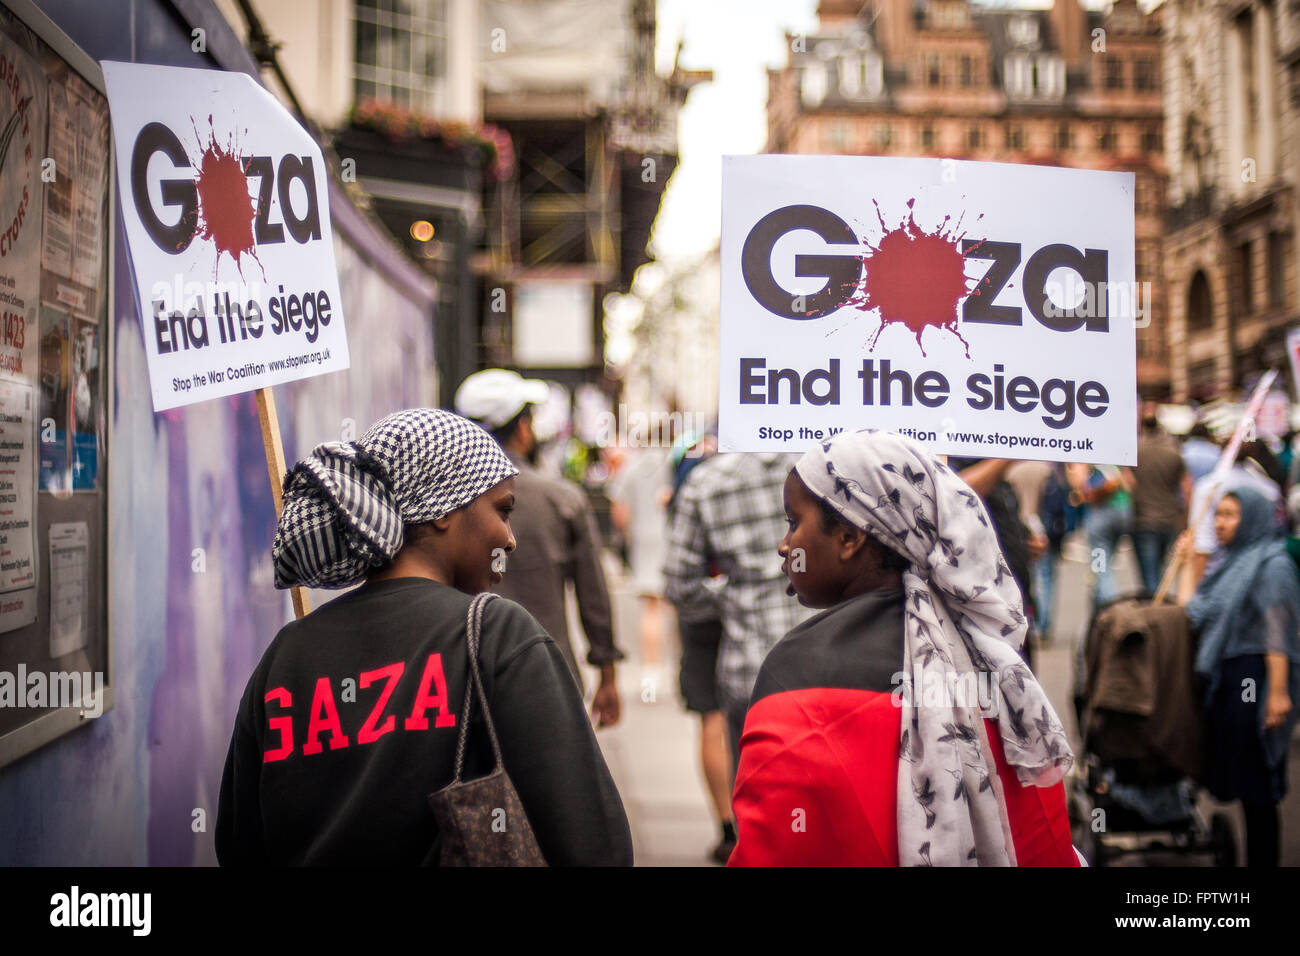 Protesters at Rally for Gaza, July 19, 2014, London - Stock Image